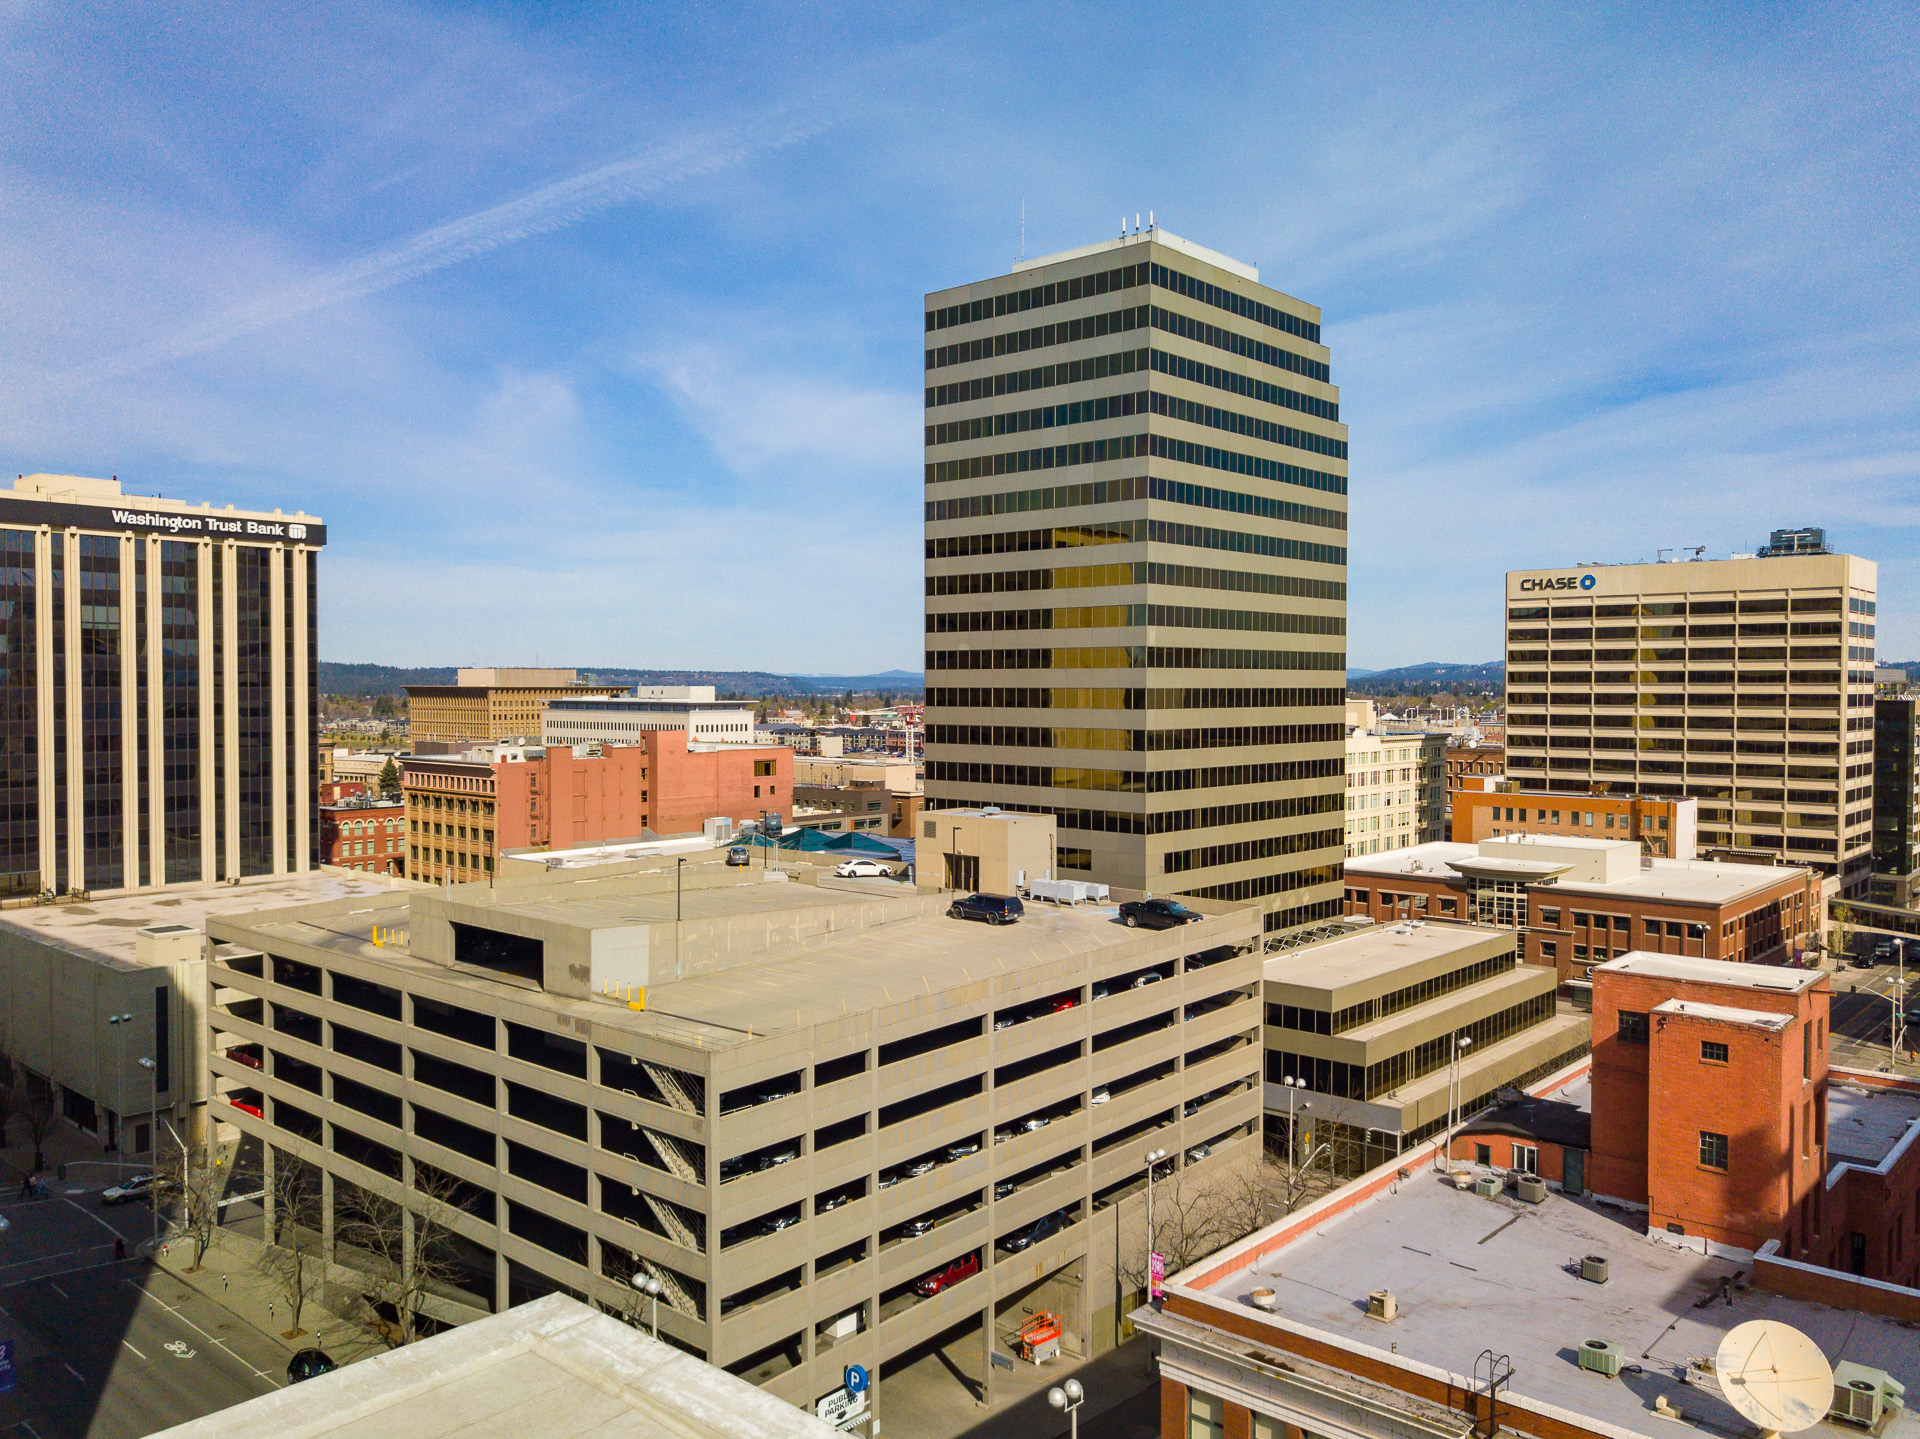 High End Commercial Real Estate Drone Photography in Spokane